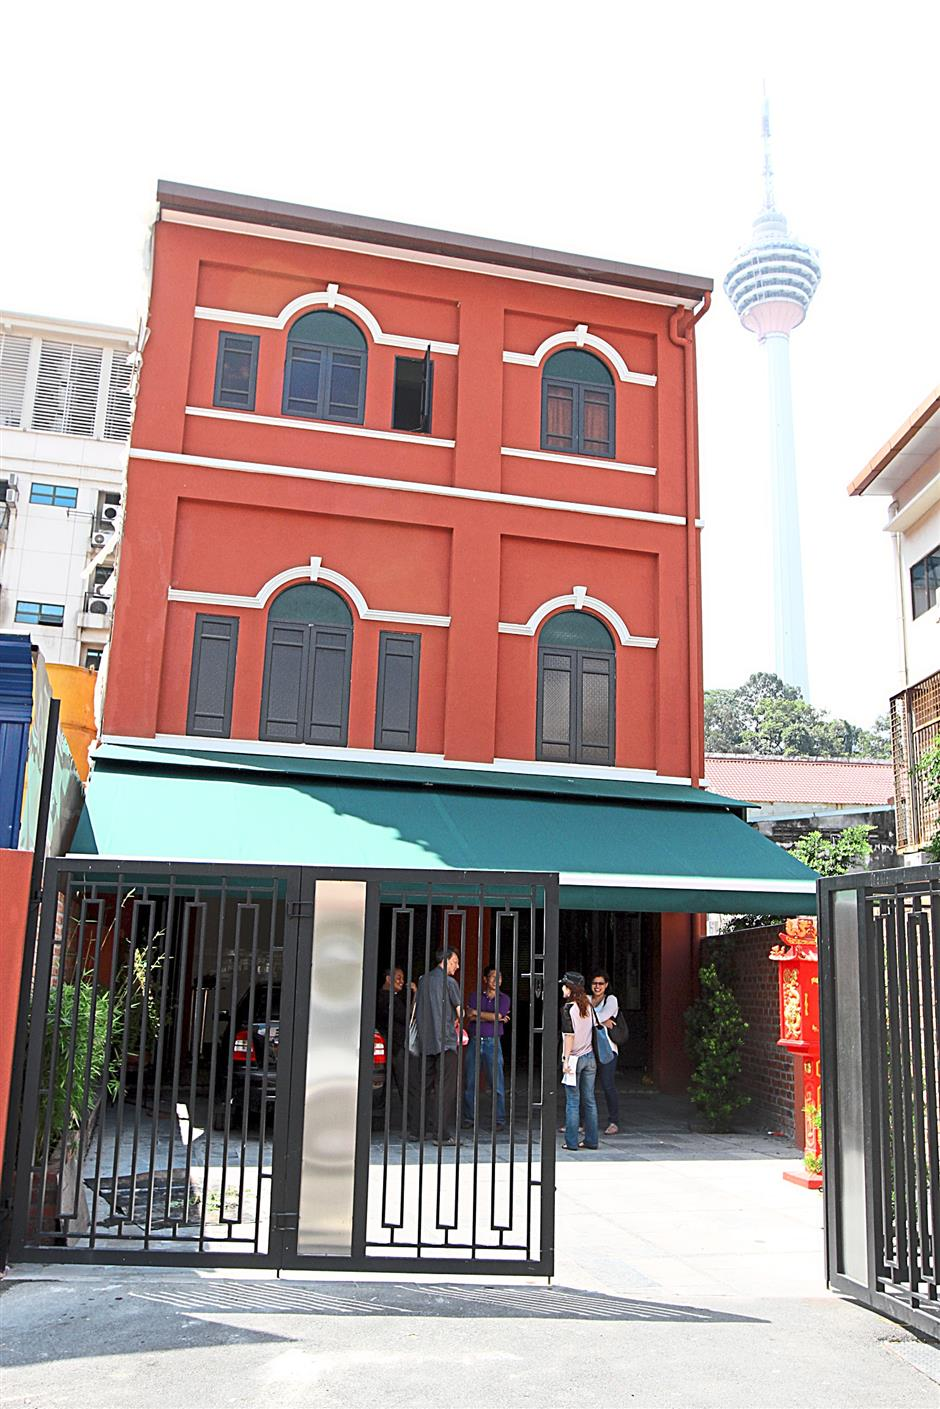 New start: The new Yut Kee Restaurant located just at the back of its original 86-year-old shop. The proprietors had to rebuilt this structure but nevertheless makes it a point to bring back originality as much as possible for Yut Kee fans.